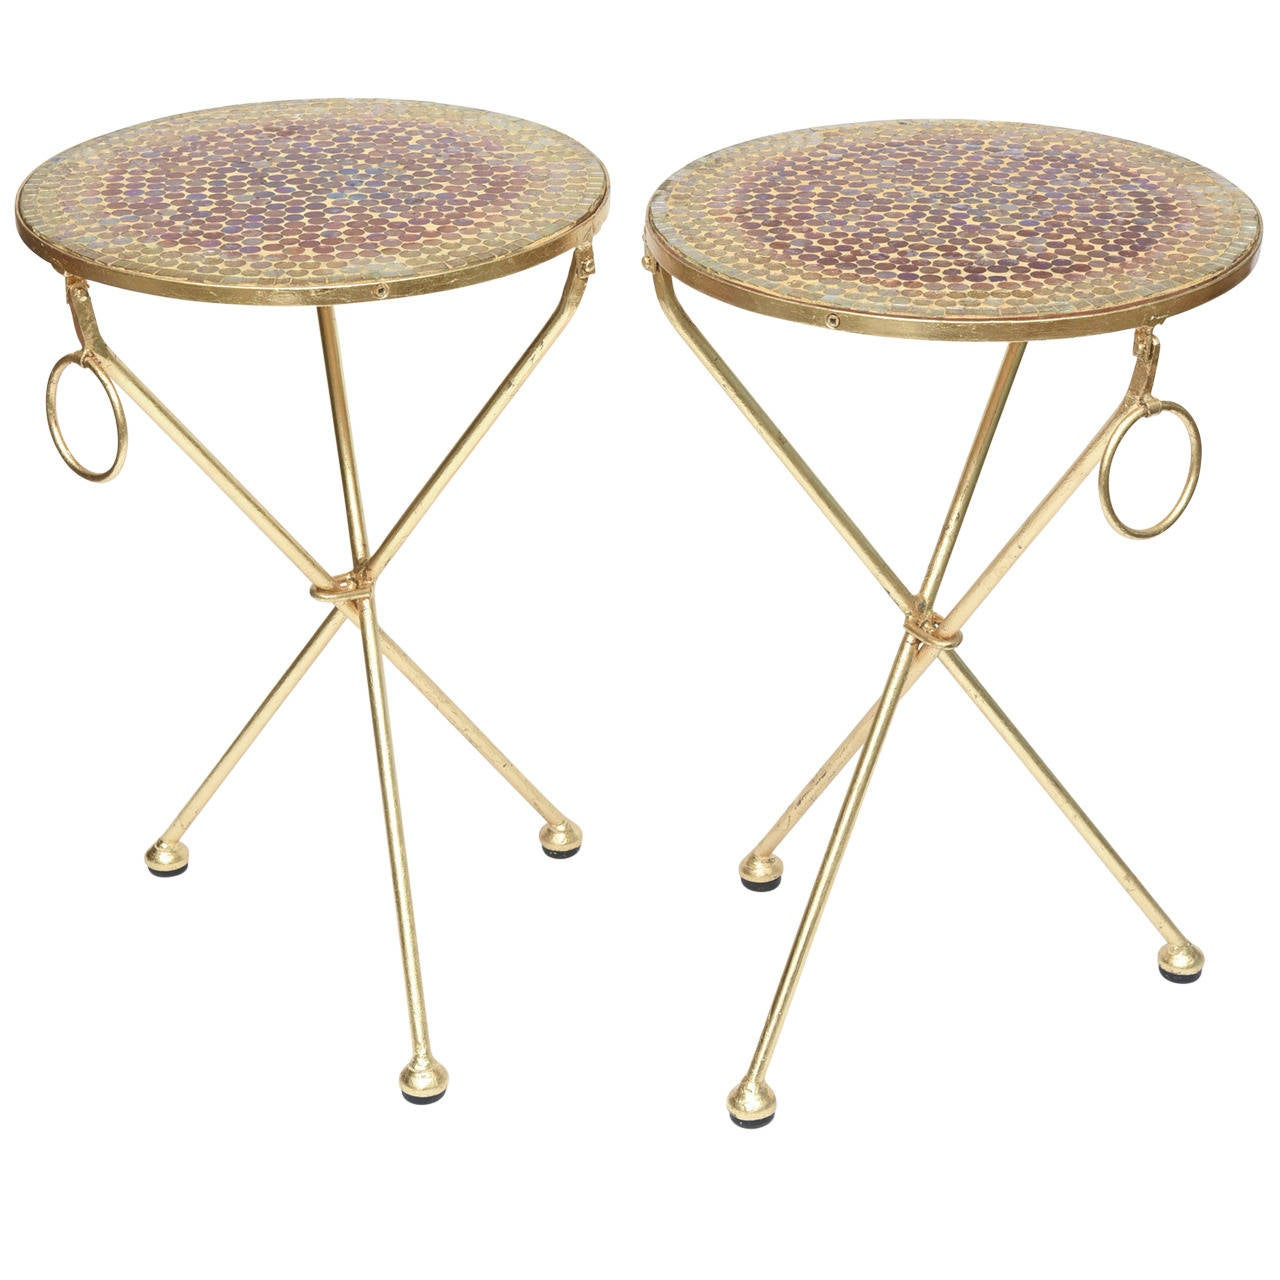 Pair of Italian Vintage Gold Leaf and Mosaic Glass Tripod Side Tables For Sale